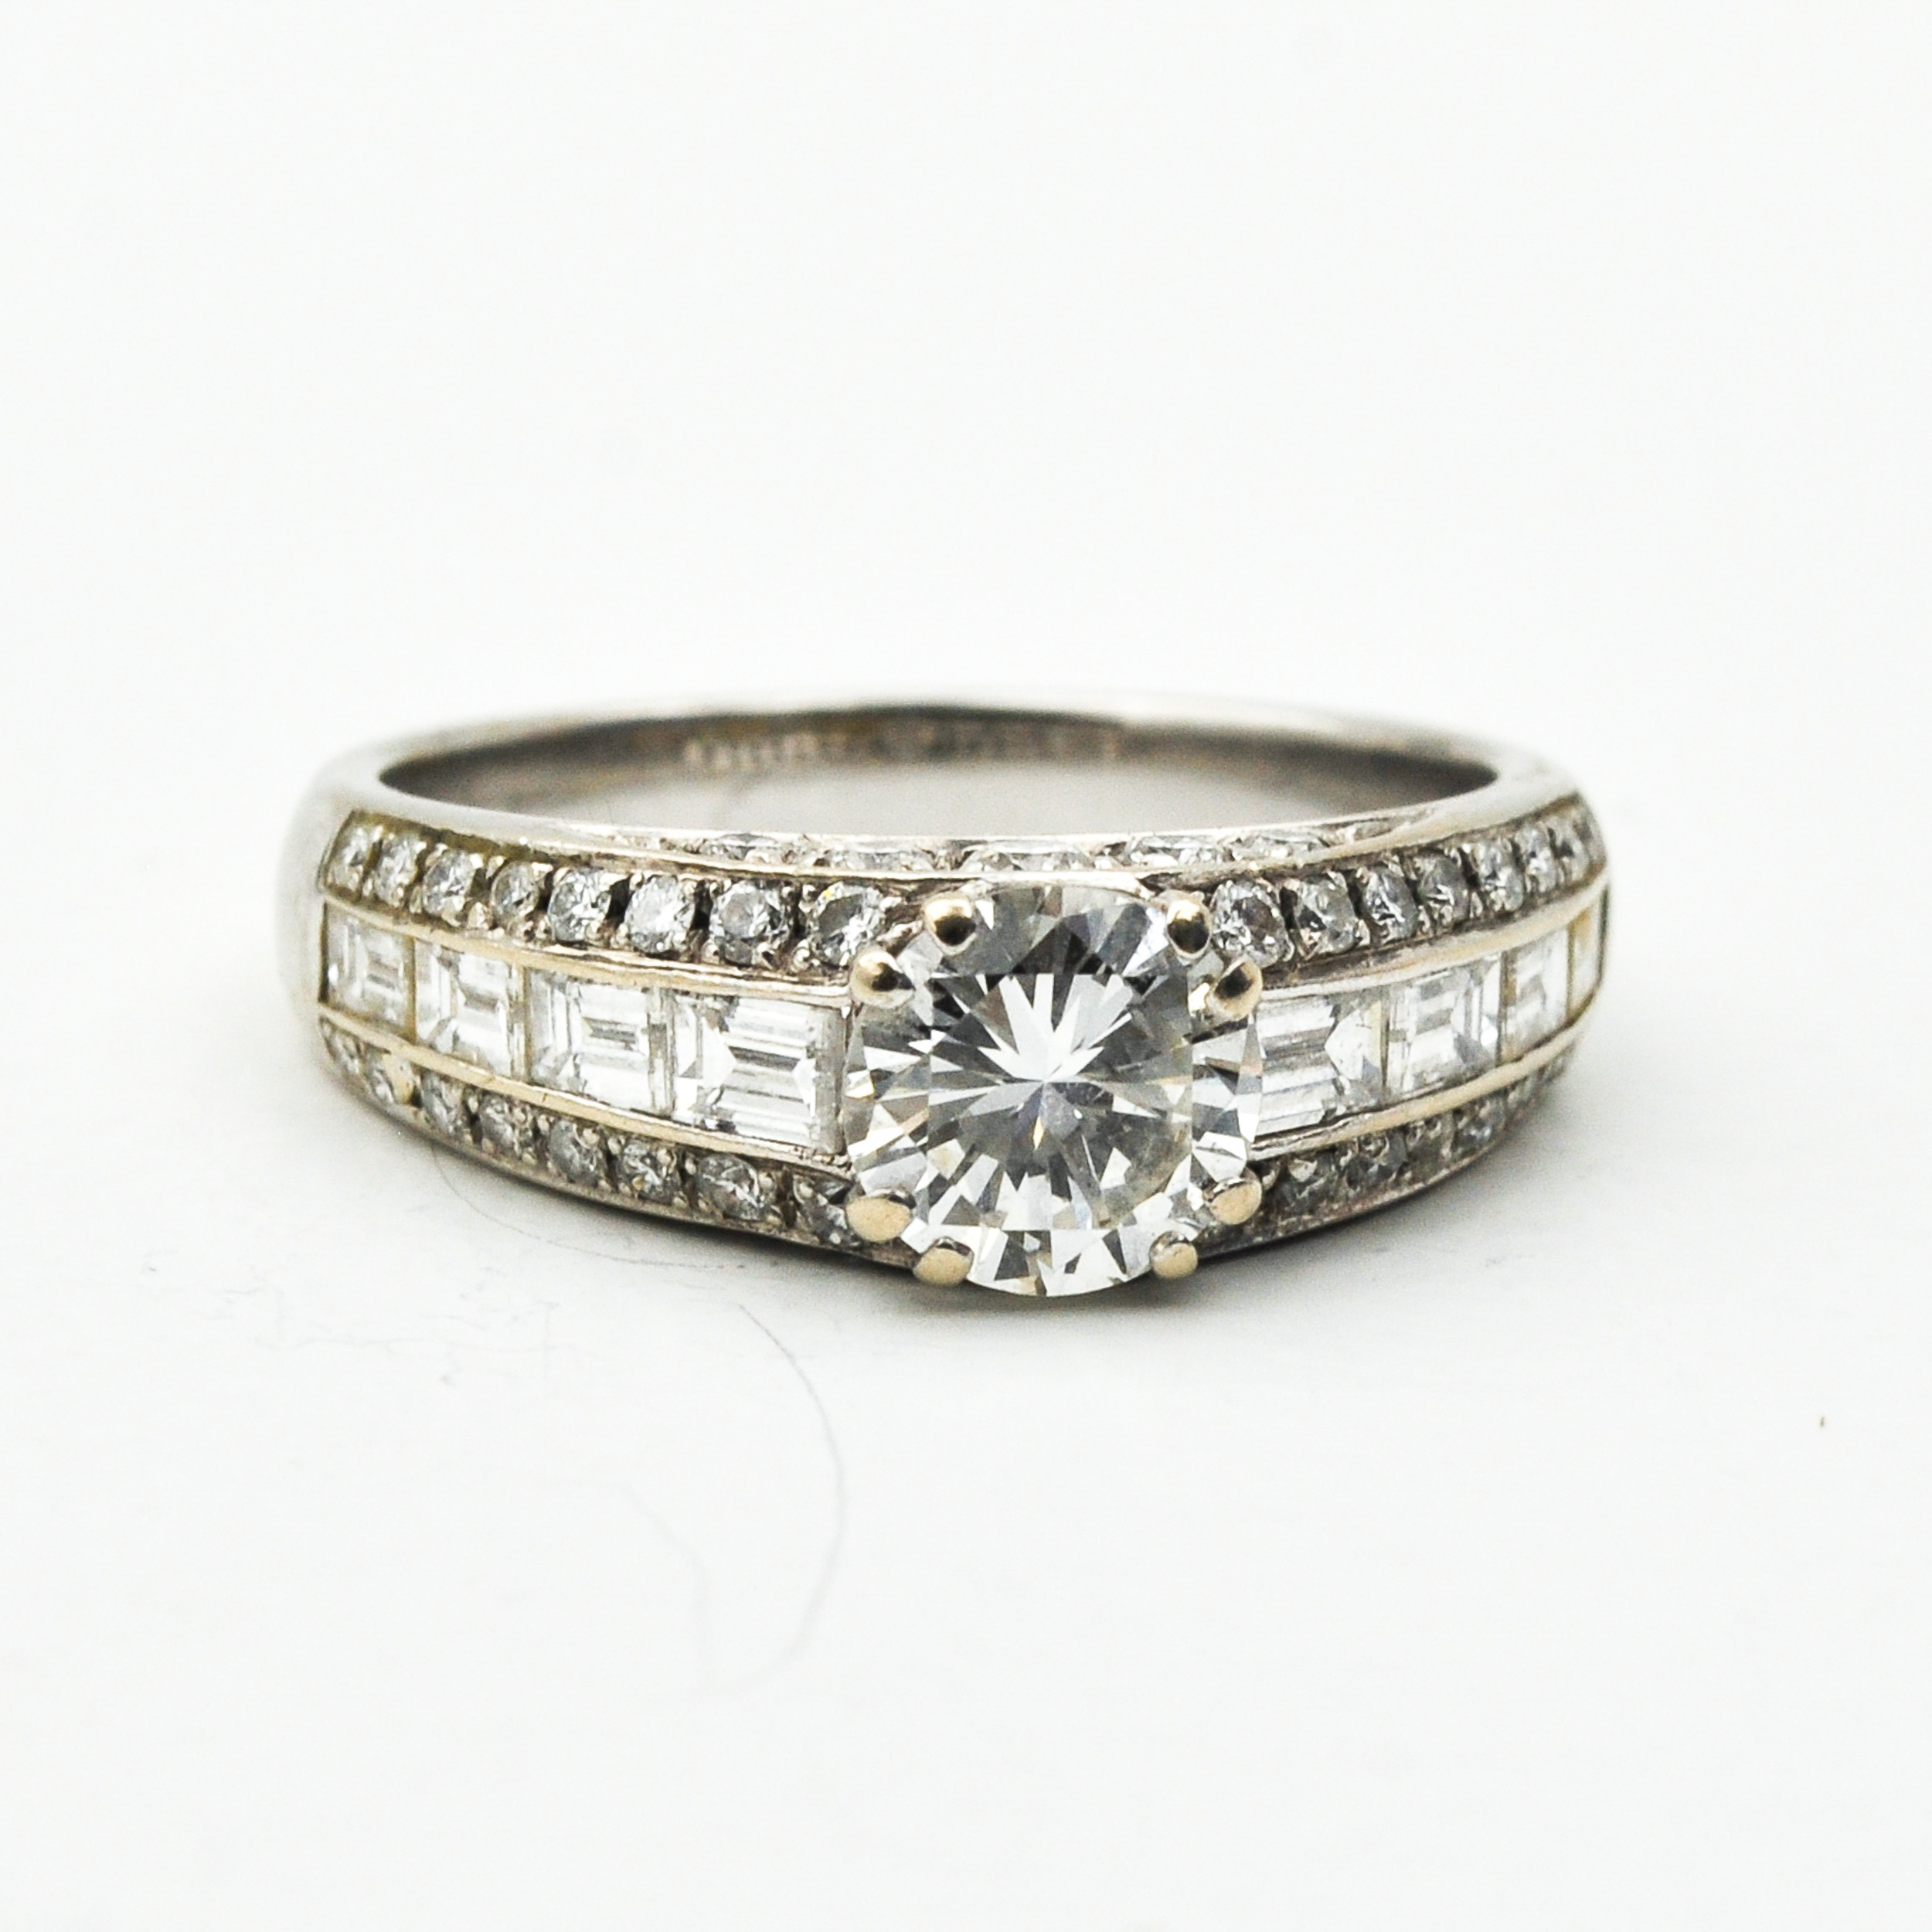 A Ladies Picchiotti 18KG and Diamond Ring